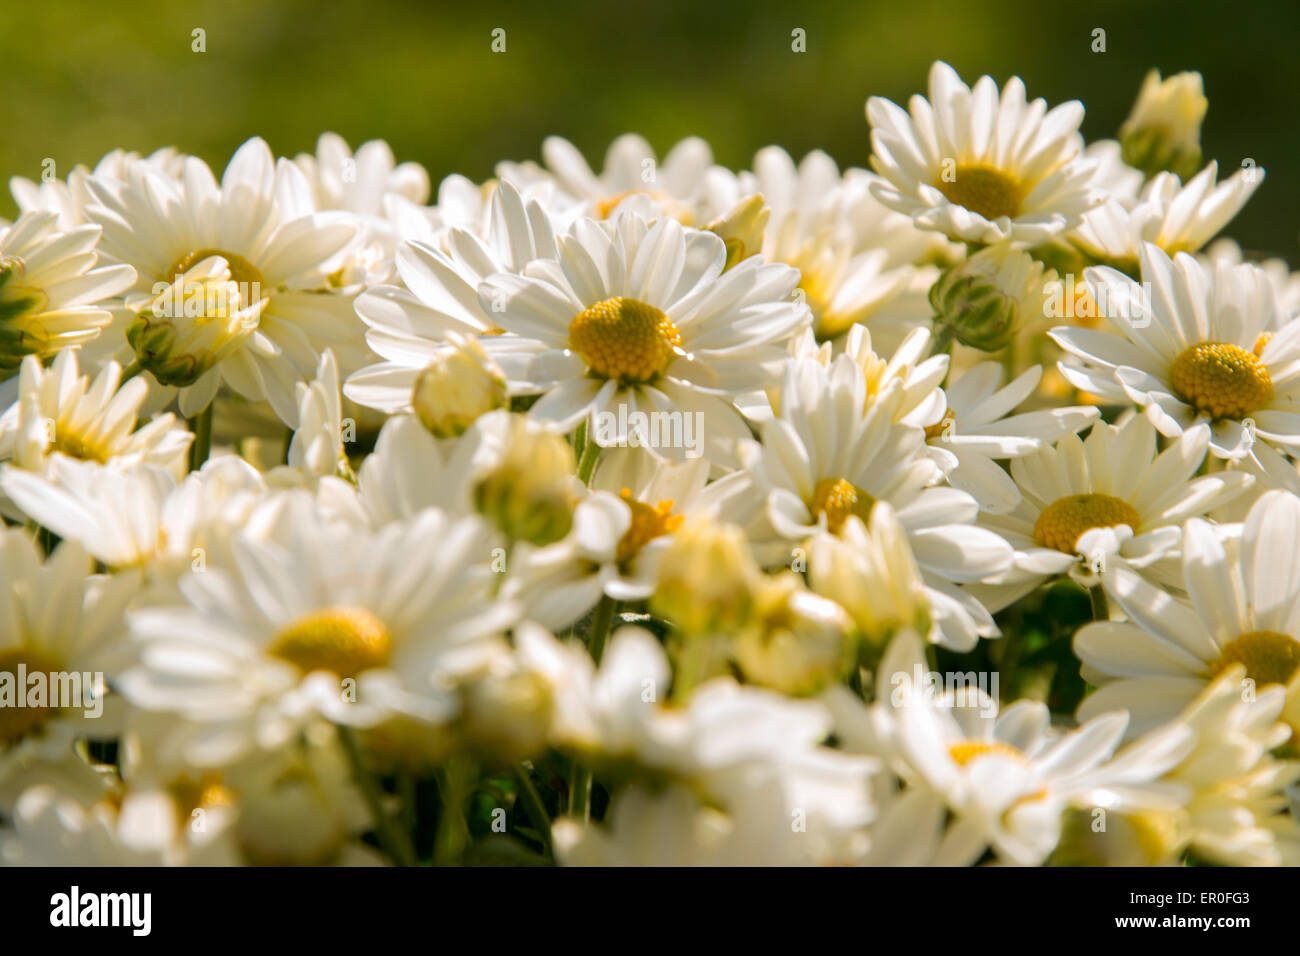 Beautiful bouquet of white daisies bright sunny day - Stock Image